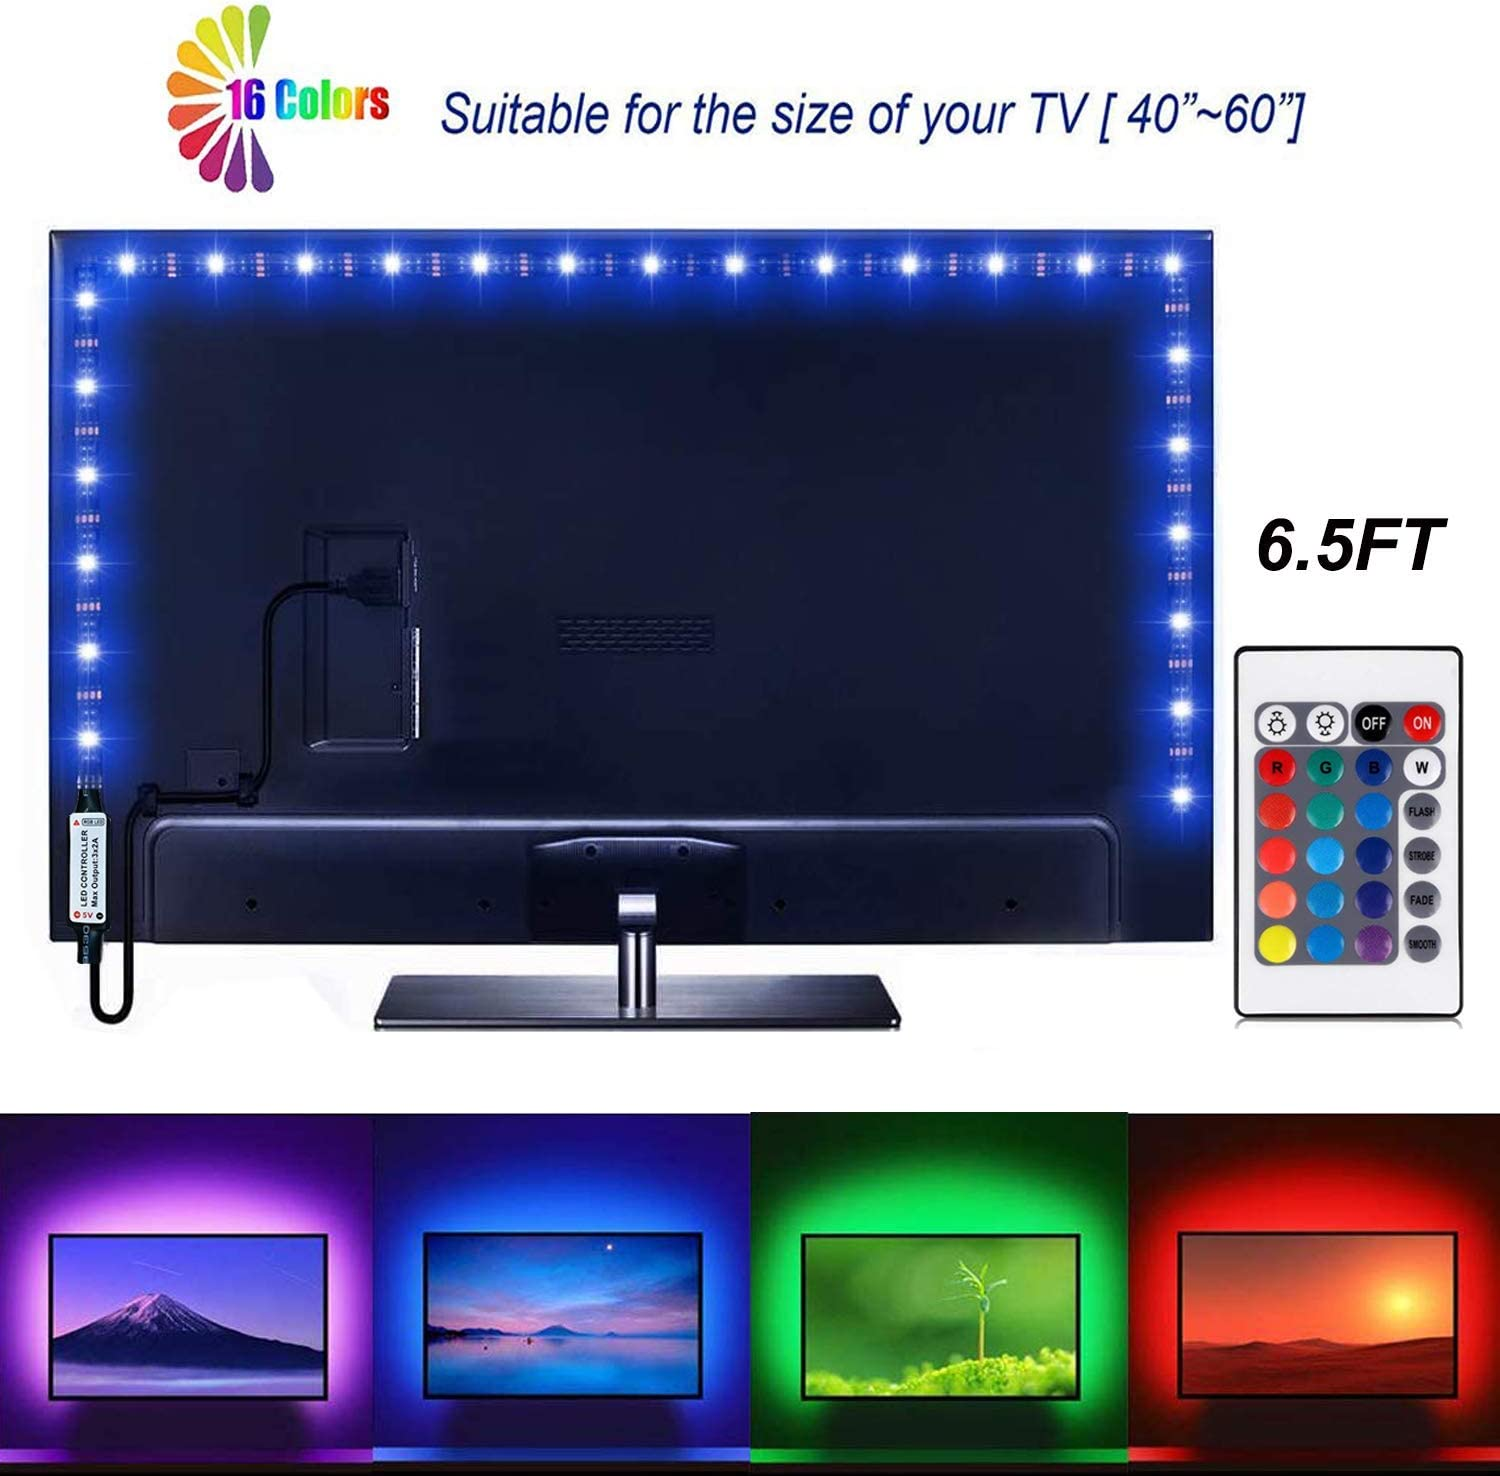 Tira de luces LED de 6,56 pies para TV SADES de 40 – 60 pulgadas USB LED TV Backlight Kit con mando a distancia TV Backlight Kit para pantalla plana TV, PC: Amazon.es: Iluminación